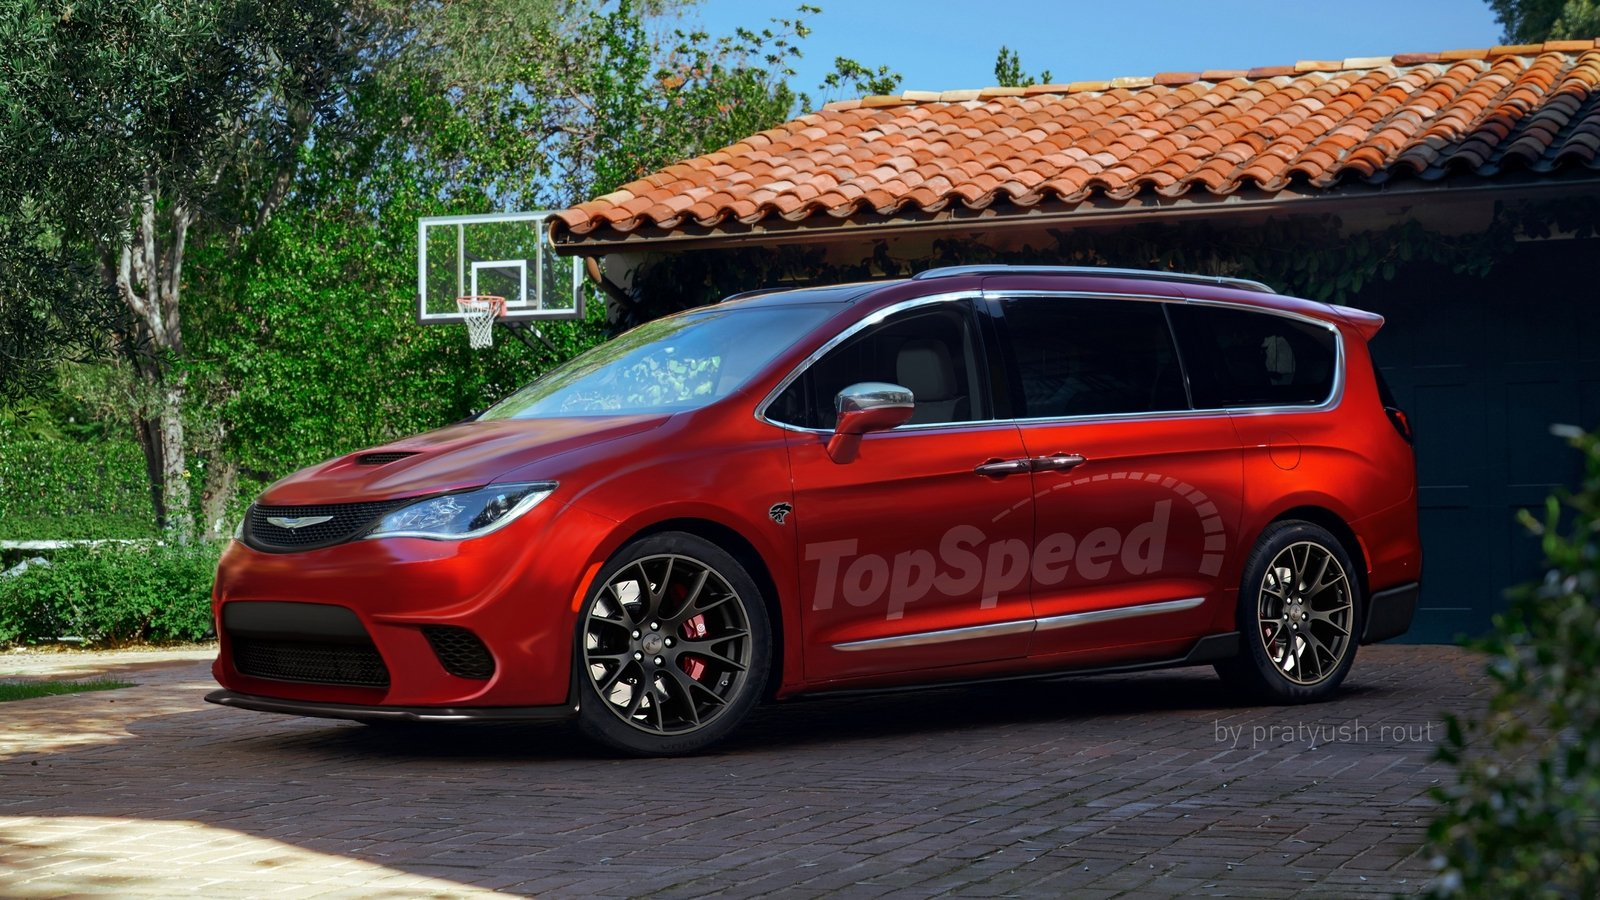 2017 chrysler pacifica hellcat review top speed. Black Bedroom Furniture Sets. Home Design Ideas